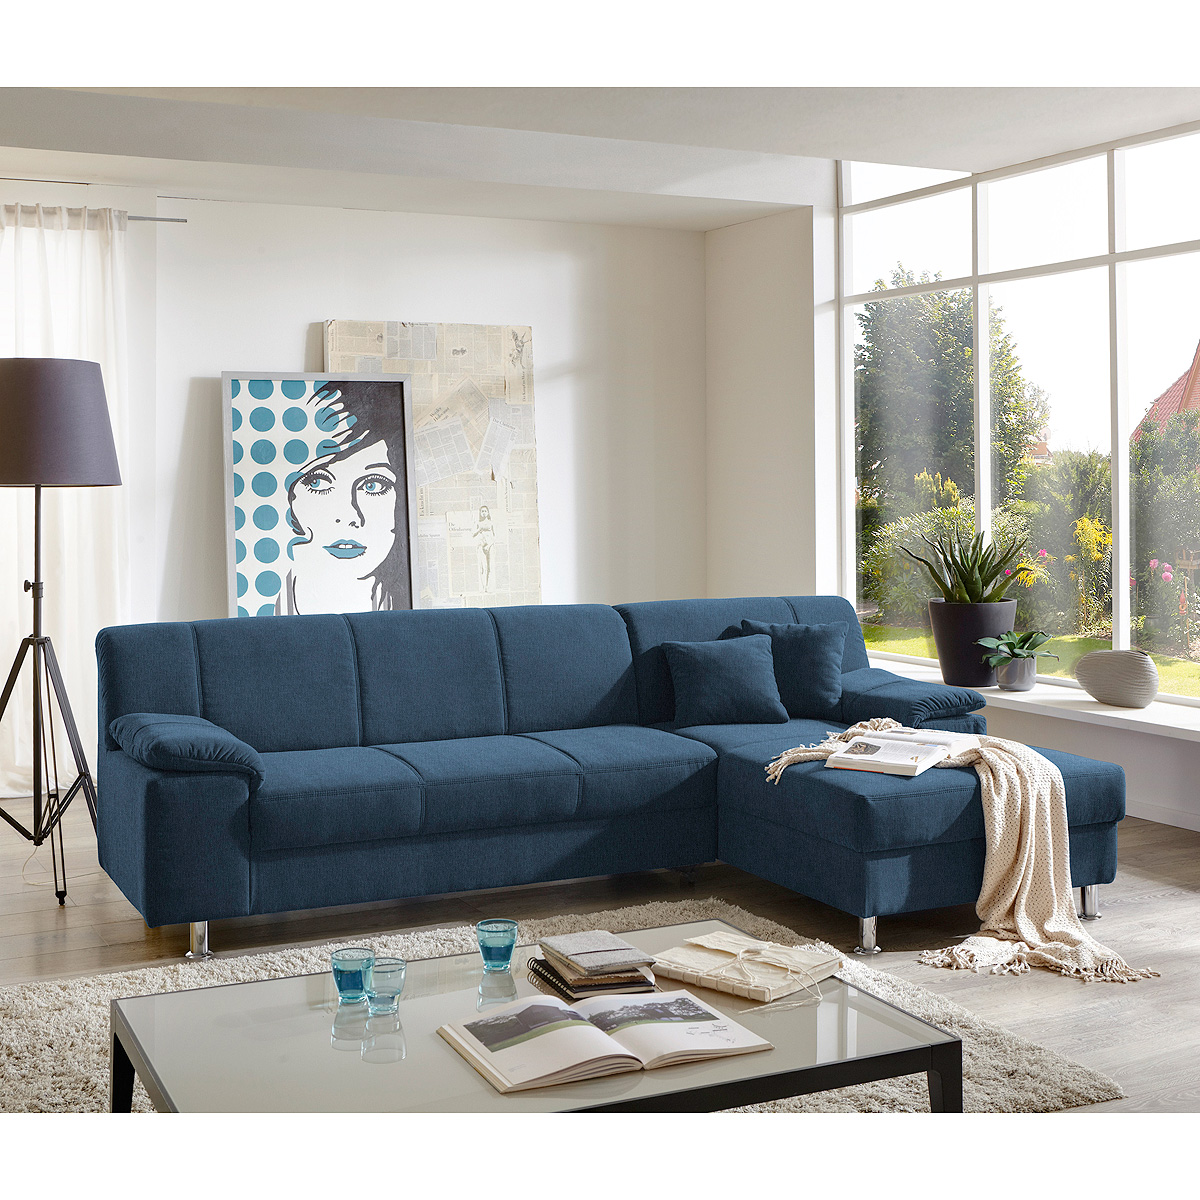 ecksofa alamo wohnlandschaft sofa polstersofa in blau mit kissen. Black Bedroom Furniture Sets. Home Design Ideas